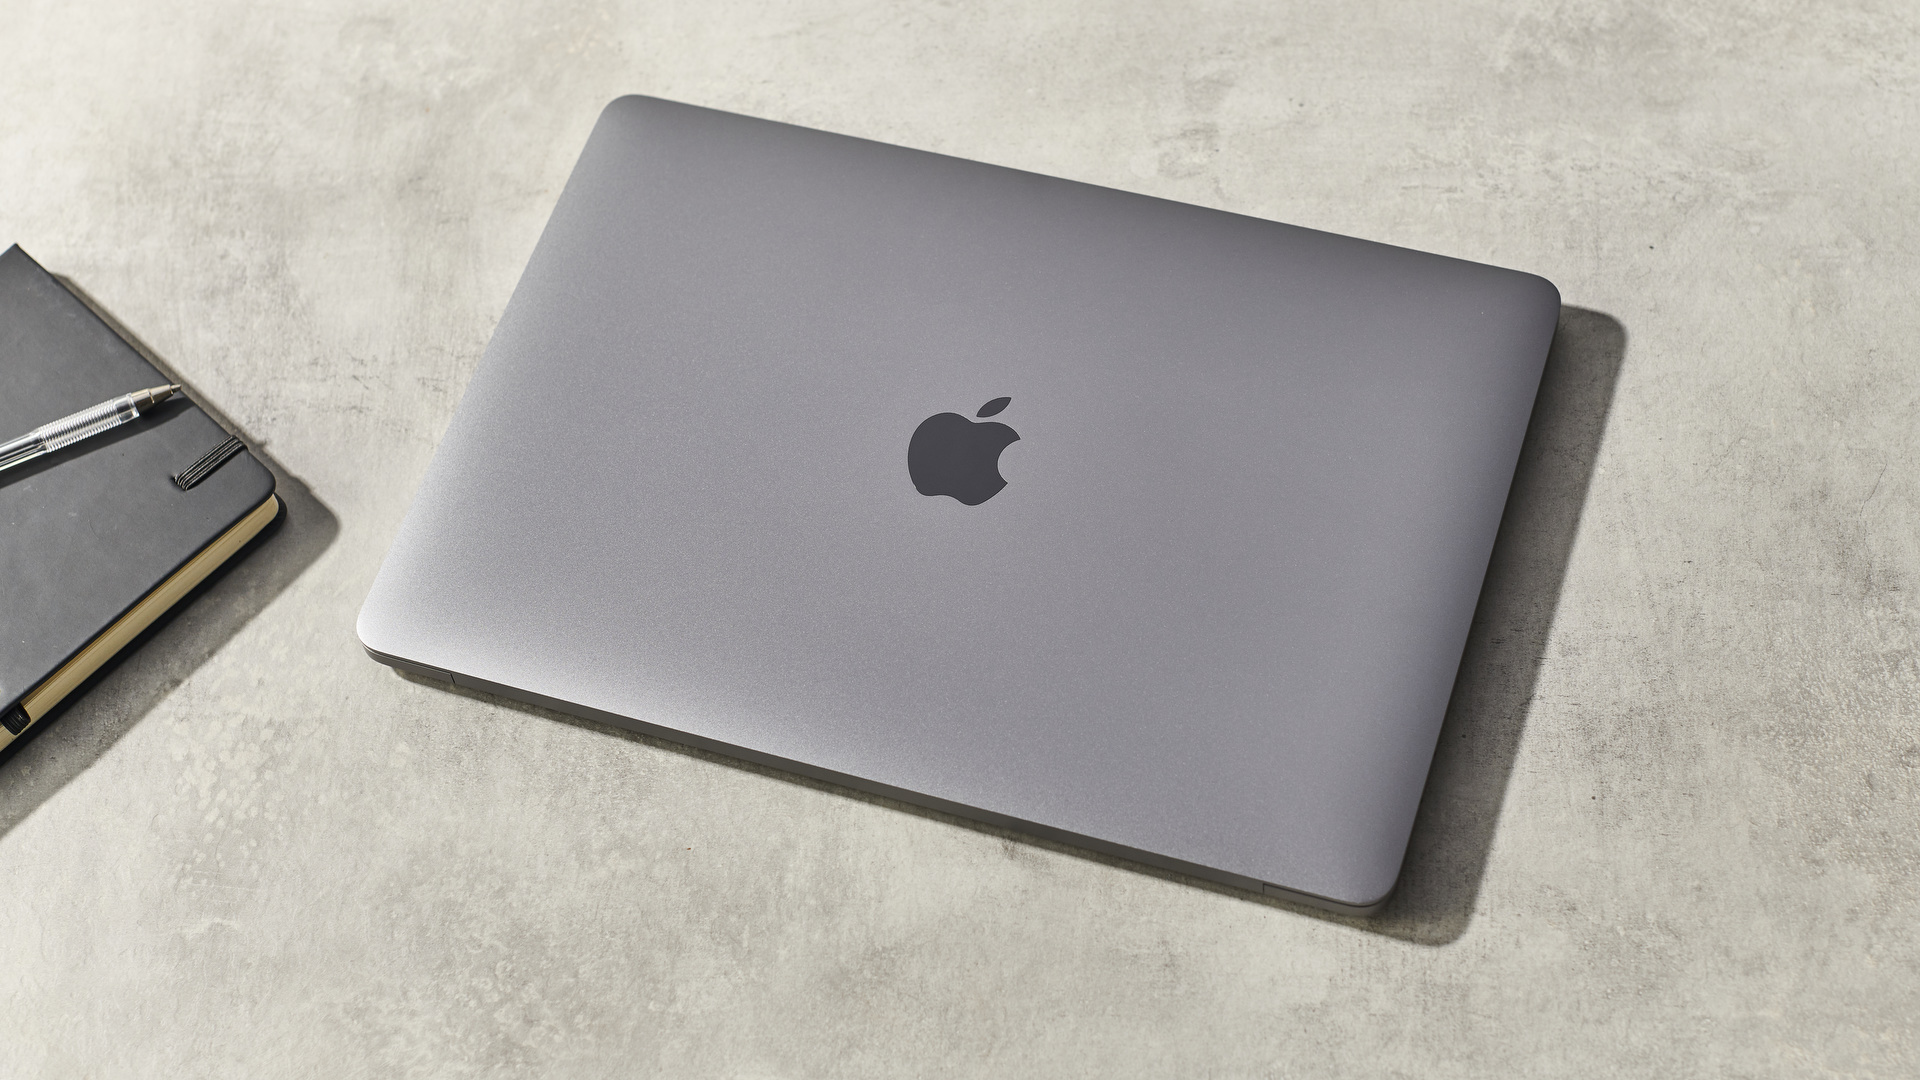 MacBook Pro 14-inch 2021 release date, price, news and leaks